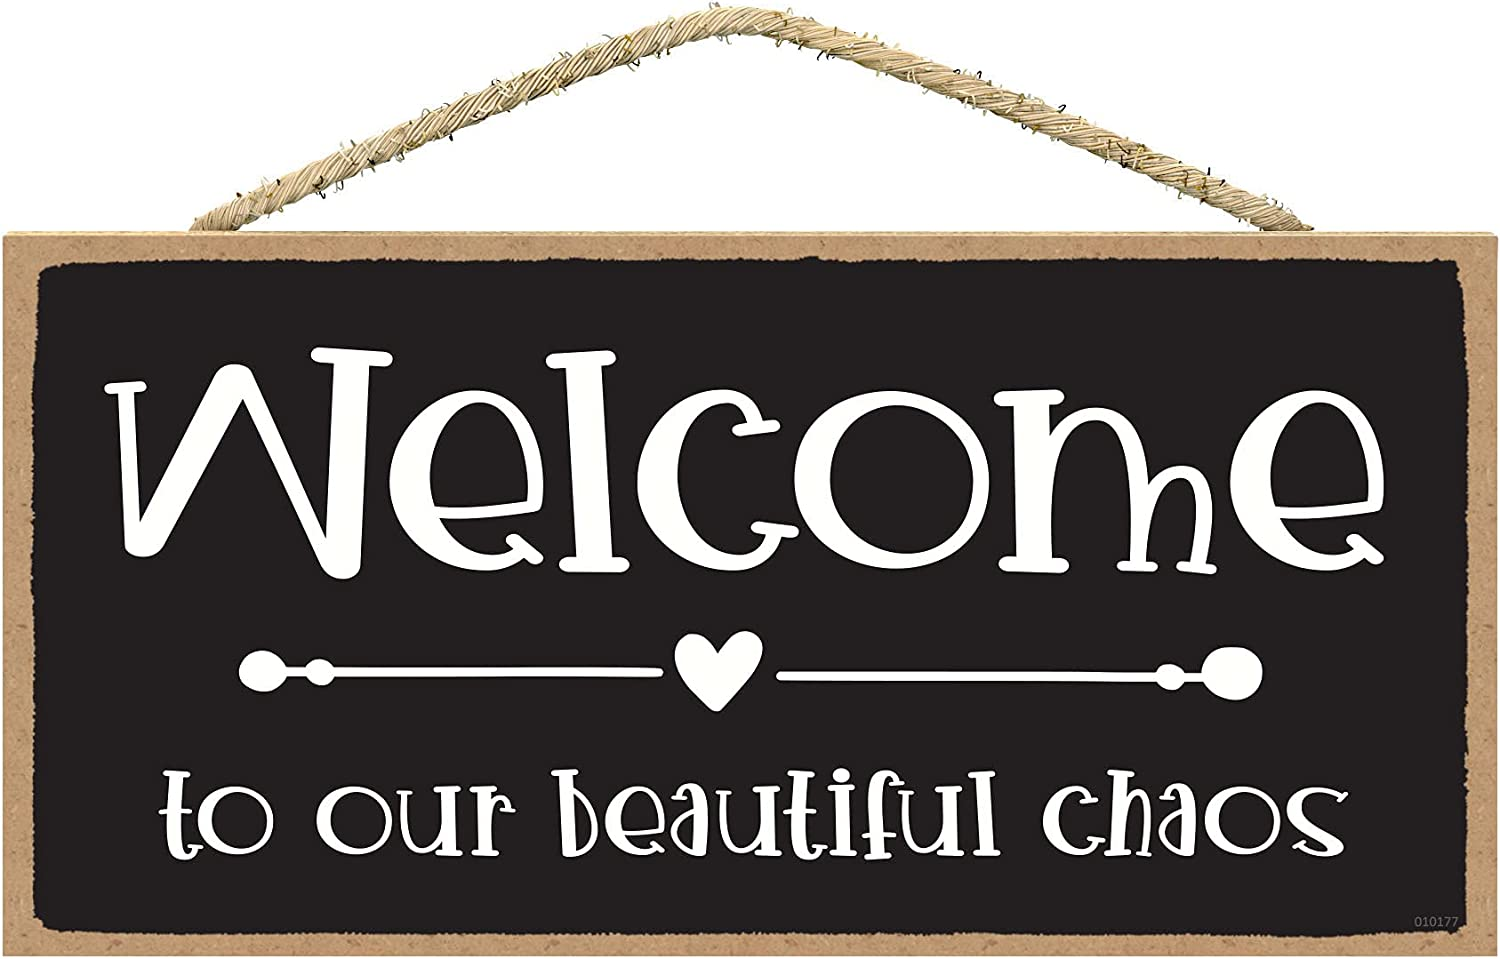 SARAH JOY'S Welcome to Our Beautiful Chaos Sign - Funny Signs for Home Decor - Funny Room Decor - Hanging Signs for Home Decor Wall 5x10 Inch